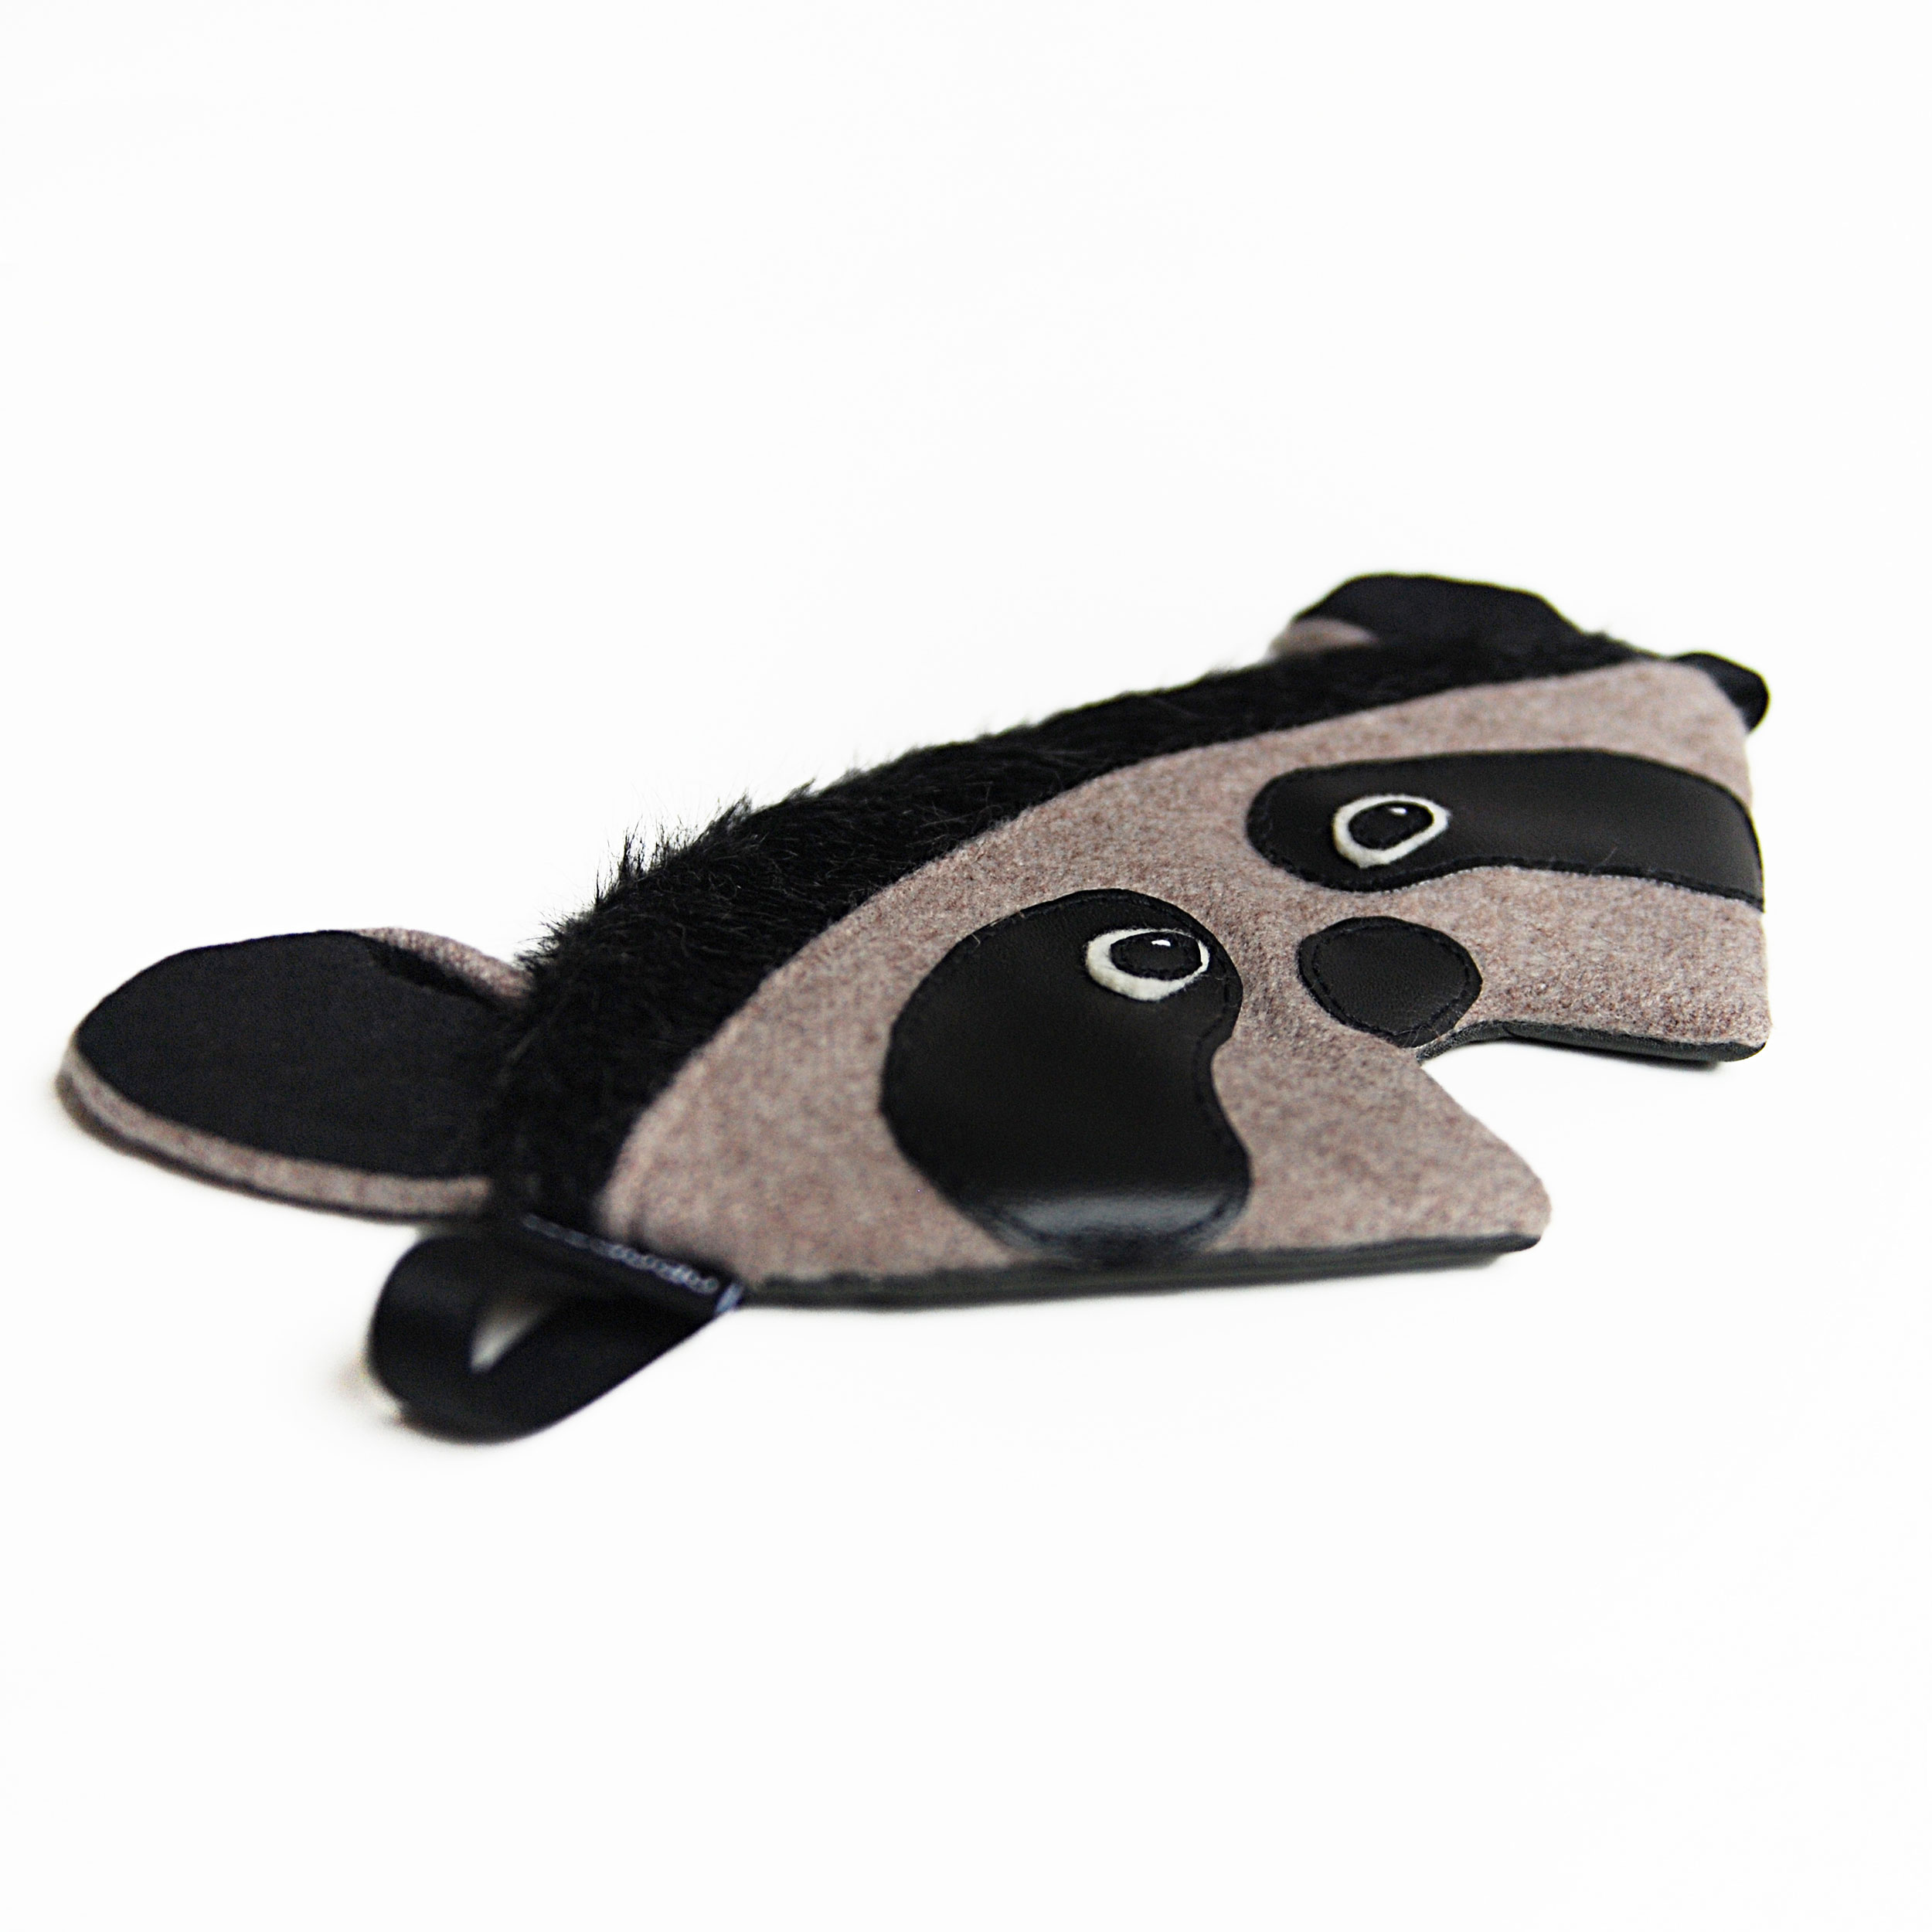 Raccoon sleep mask - Szududu Raccoon Eye Mask